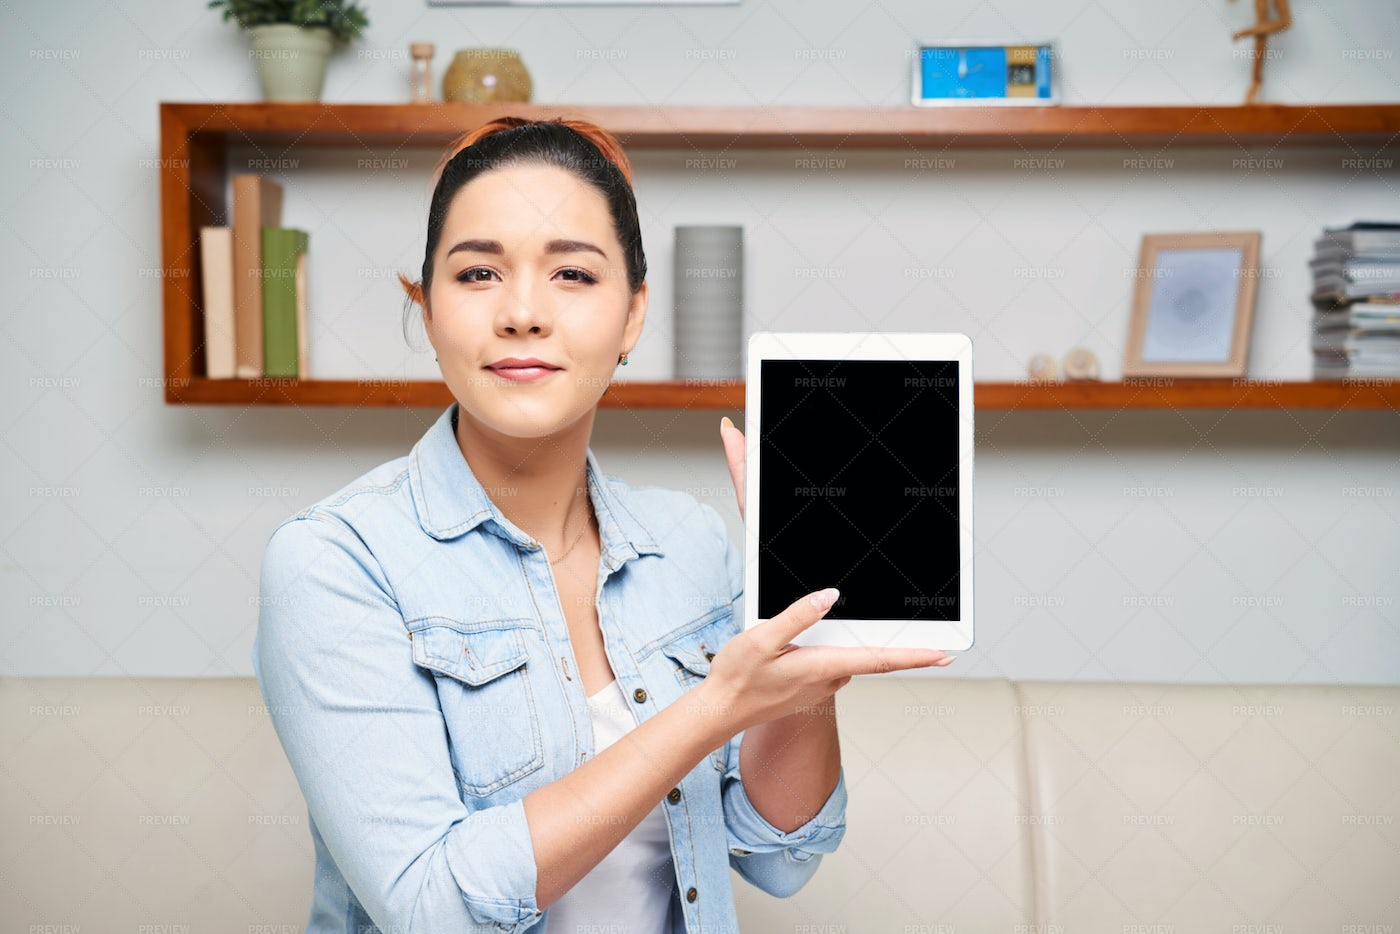 Woman Holding Tablet Pc: Stock Photos